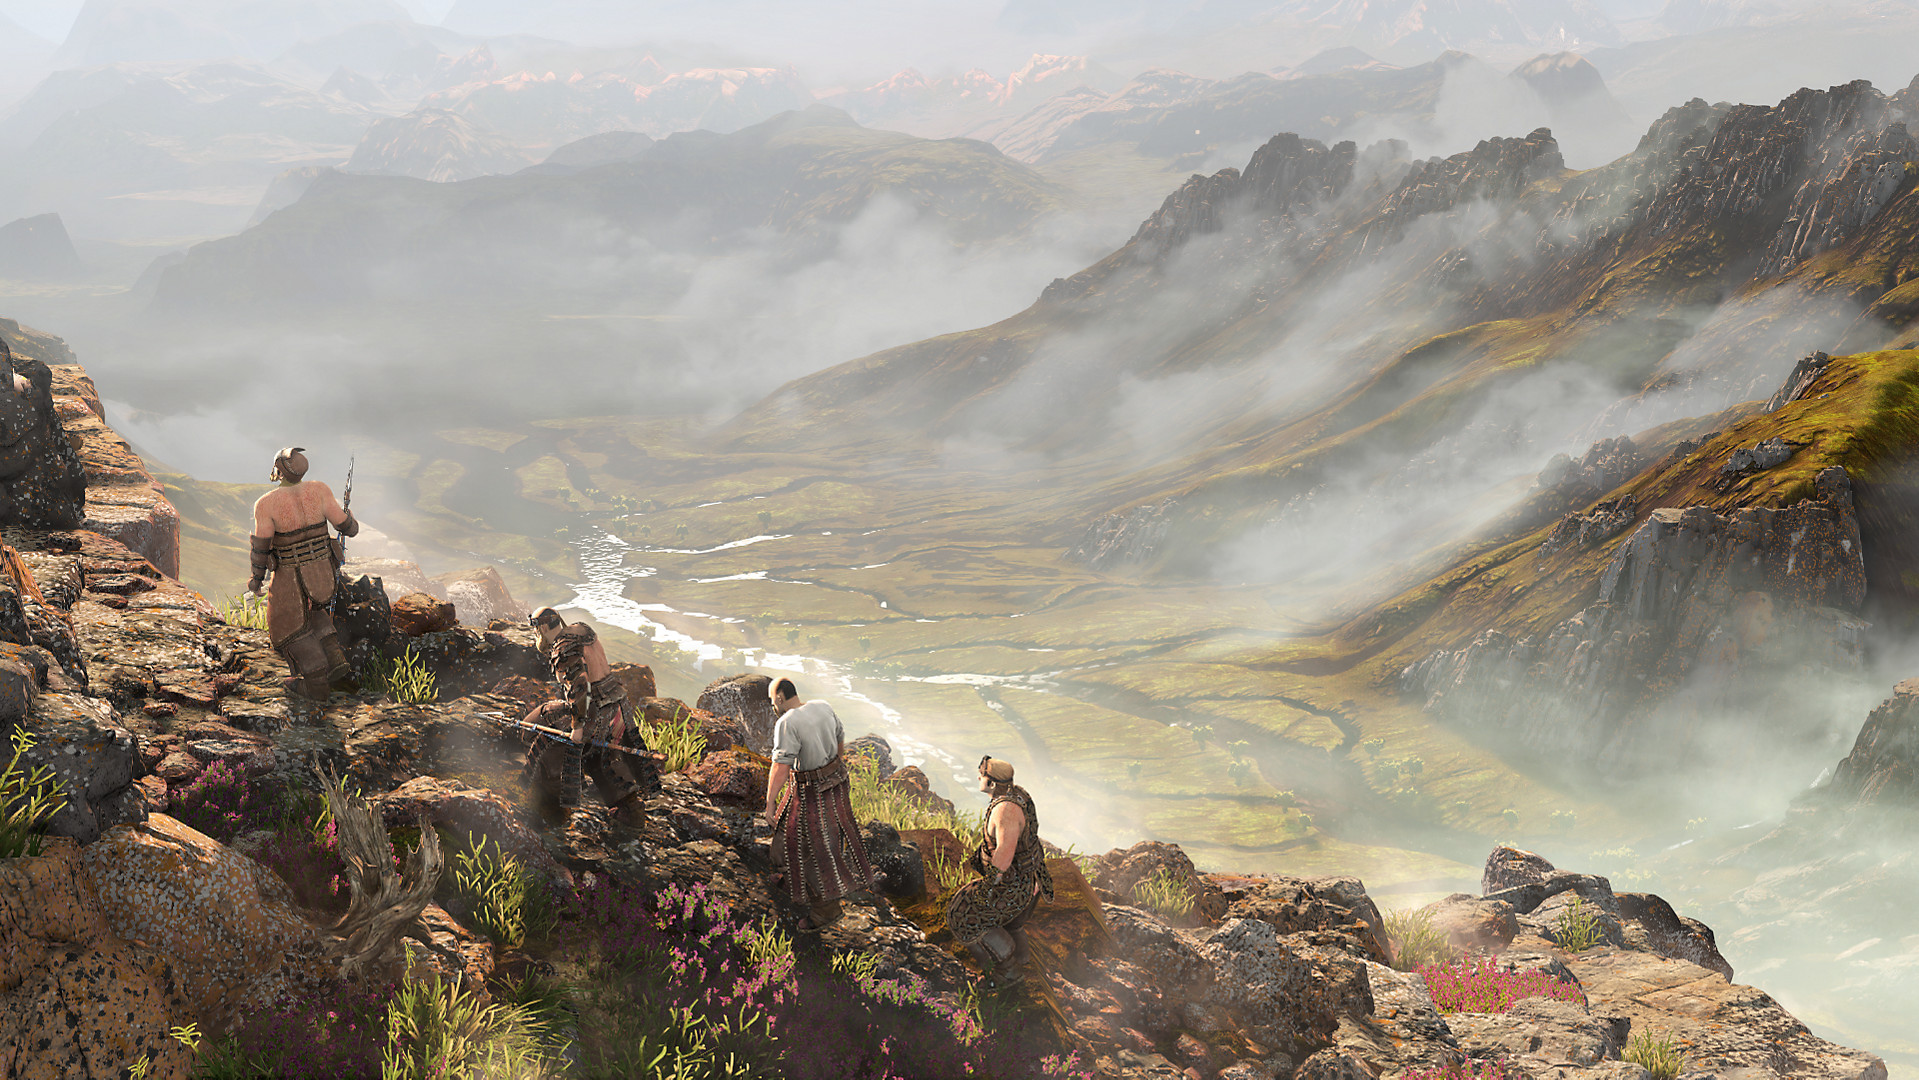 A group of figures move across a rocky mountain spine in Horizon Zero Dawn, with a cloudy valley far below